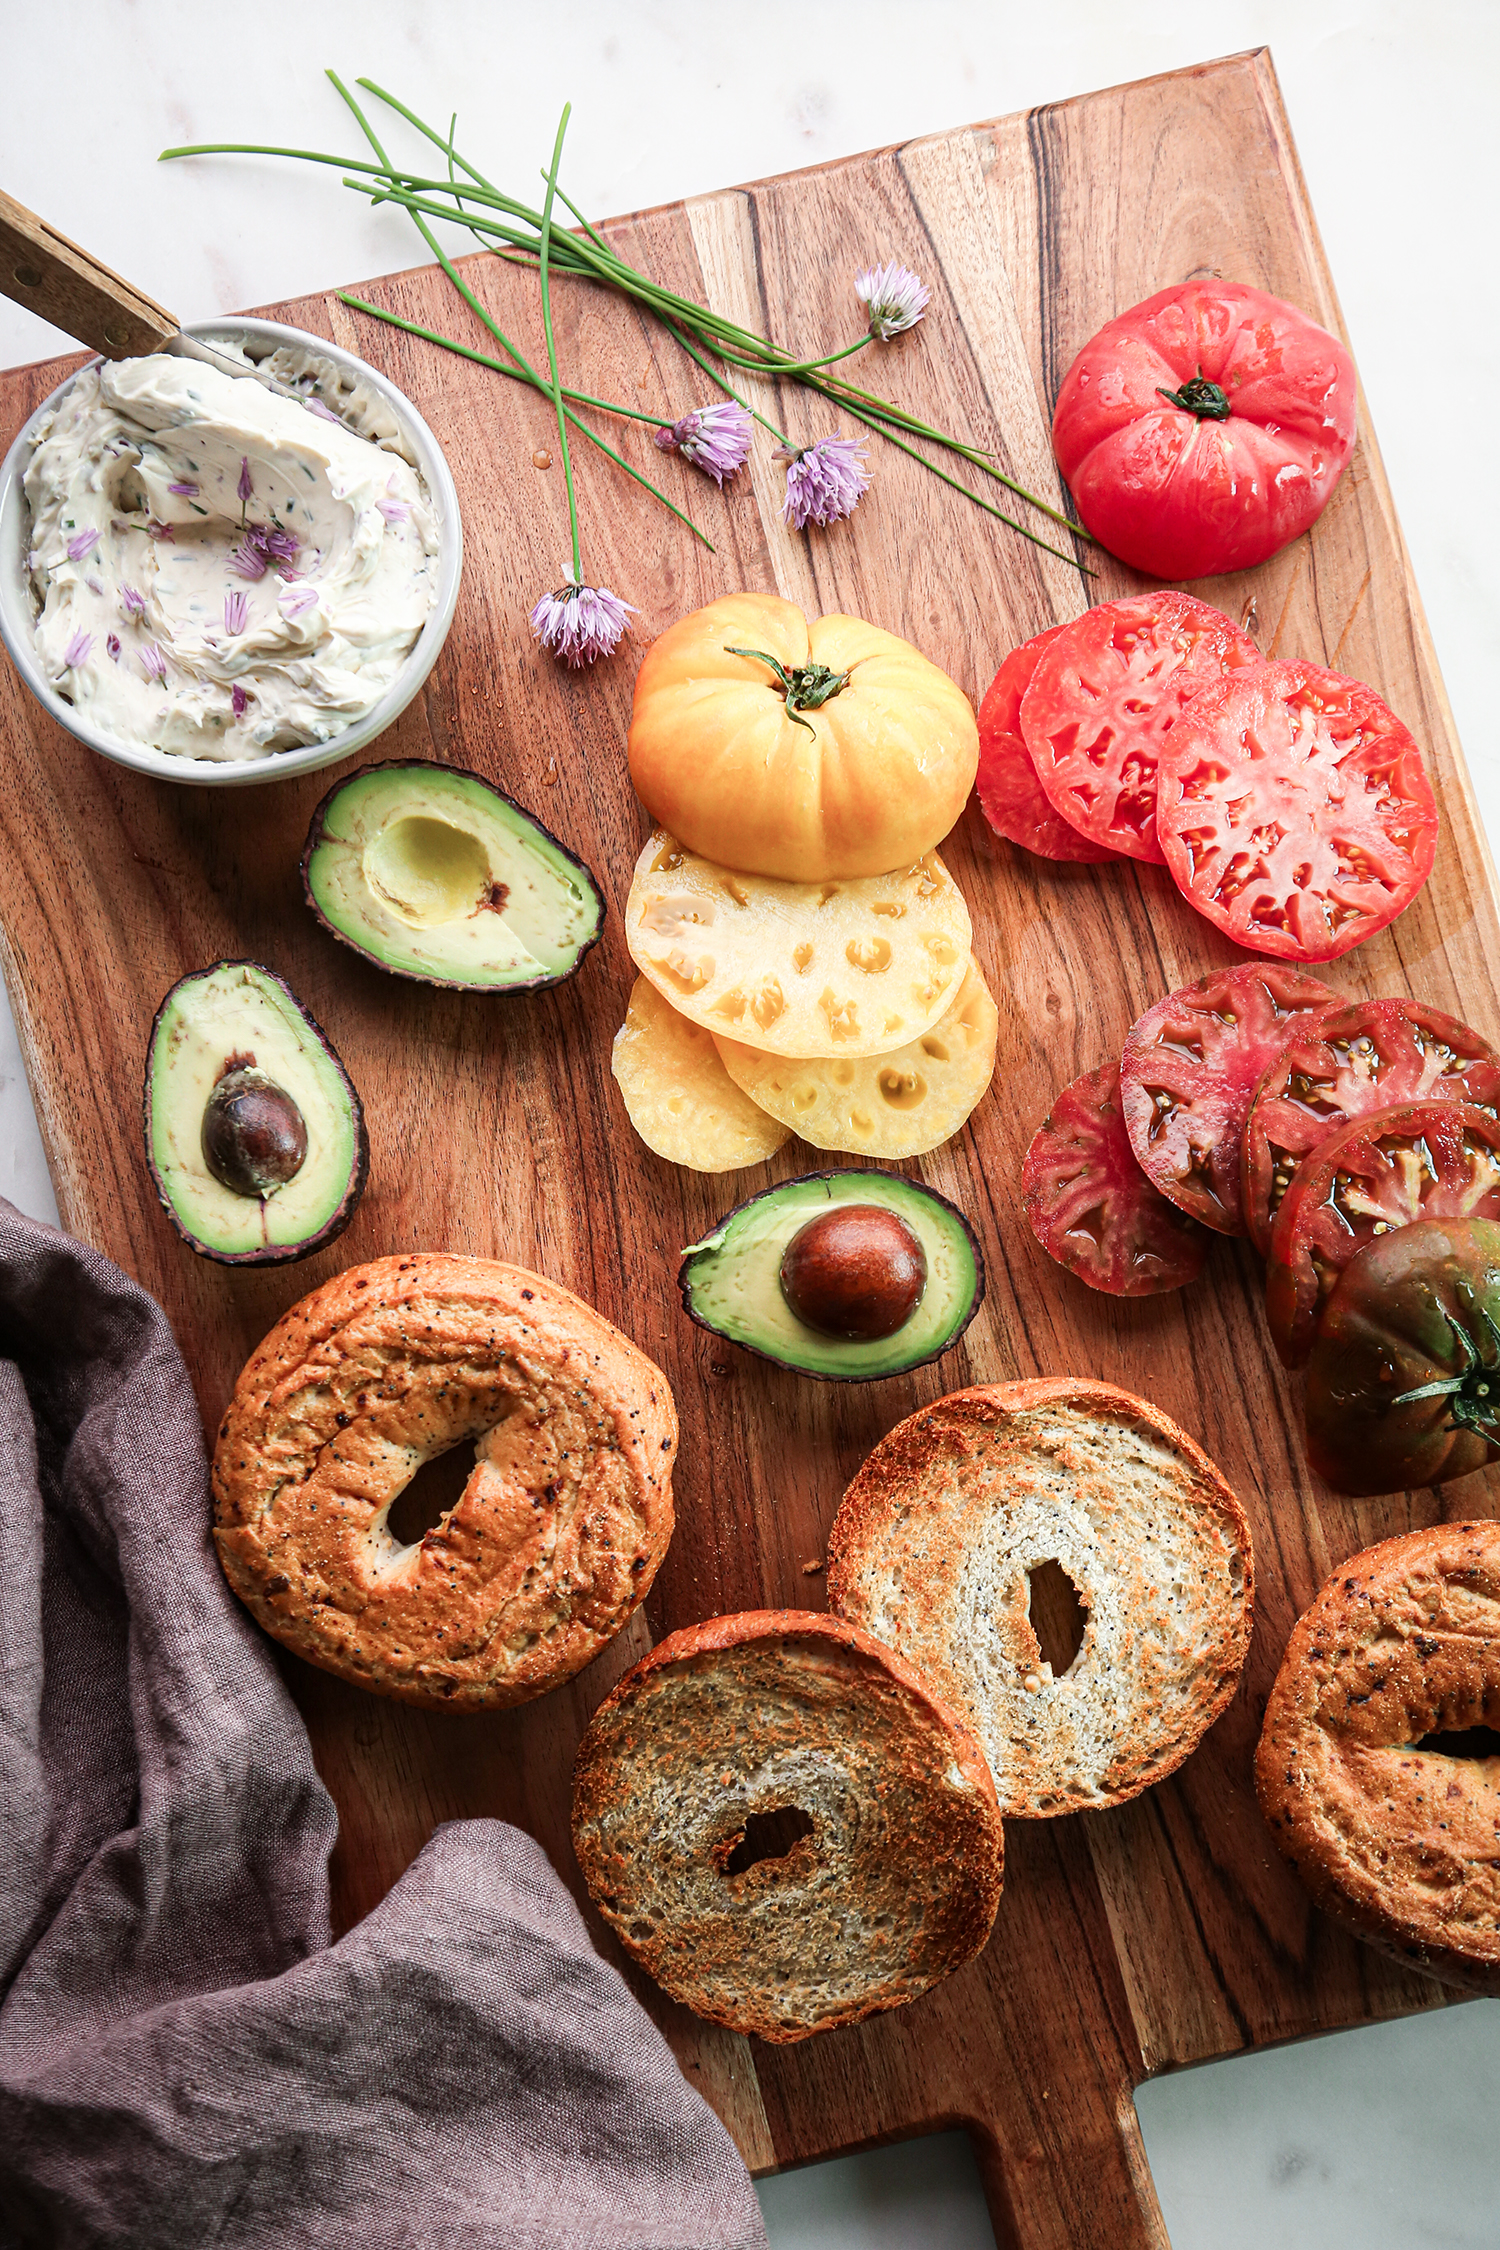 Avocado and Tomato Bagel Sandwich with chive and onion cream cheese ingredients on wooden board